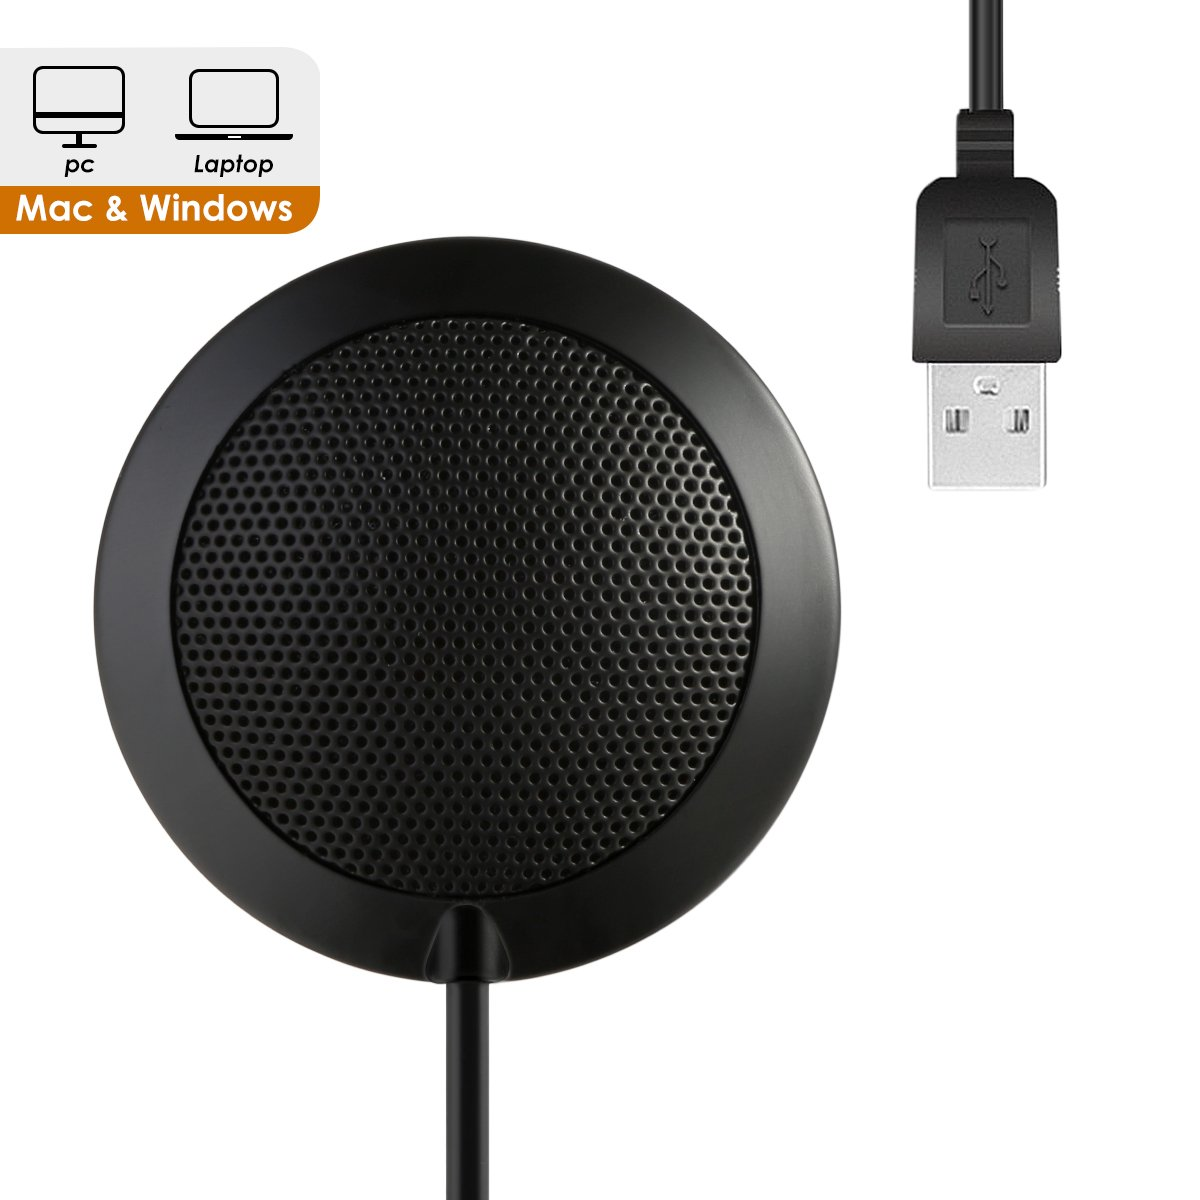 USB Microphone for Computer,SOONHUA PC Laptop Condenser Omnidirectional Mic Desktop Conference Microphone for Recording, Video Meeting, Gaming, Skype Chatting, VoIP Calls with 360°10' Pickup Range